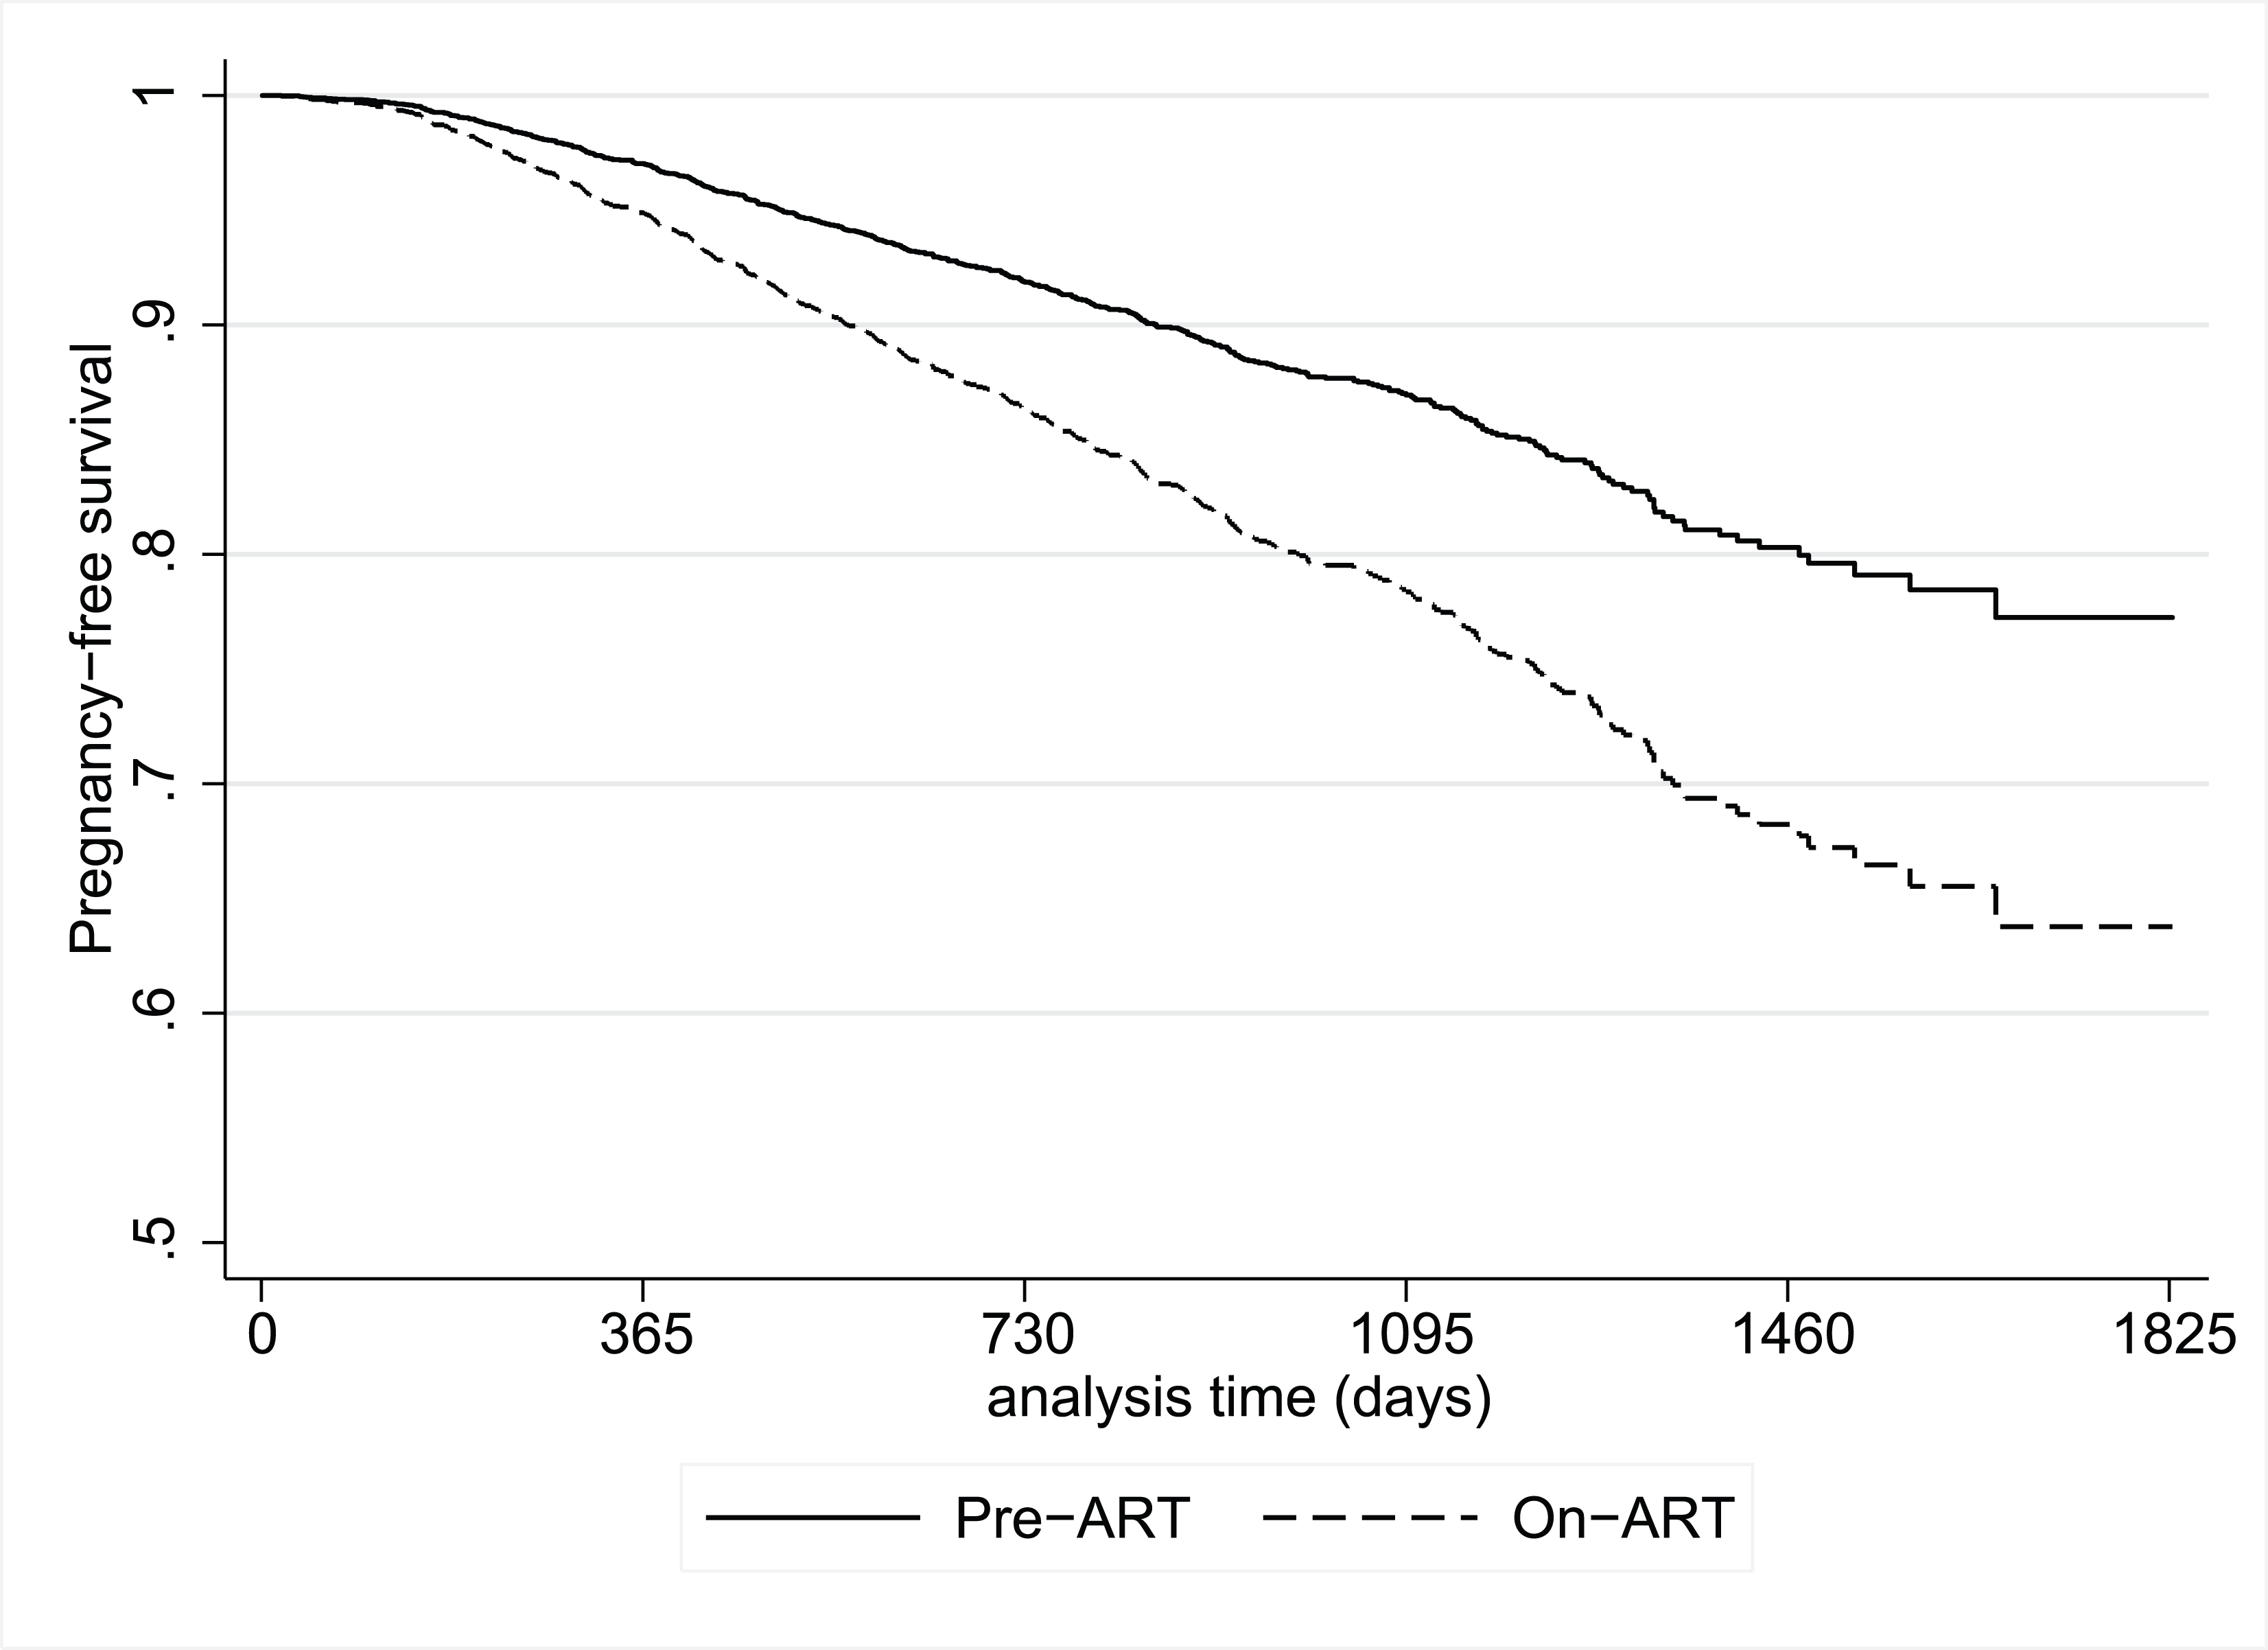 Plot of the postestimation pregnancy-free survival function from a proportional hazards model for participants during the pre-ART and on-ART periods.